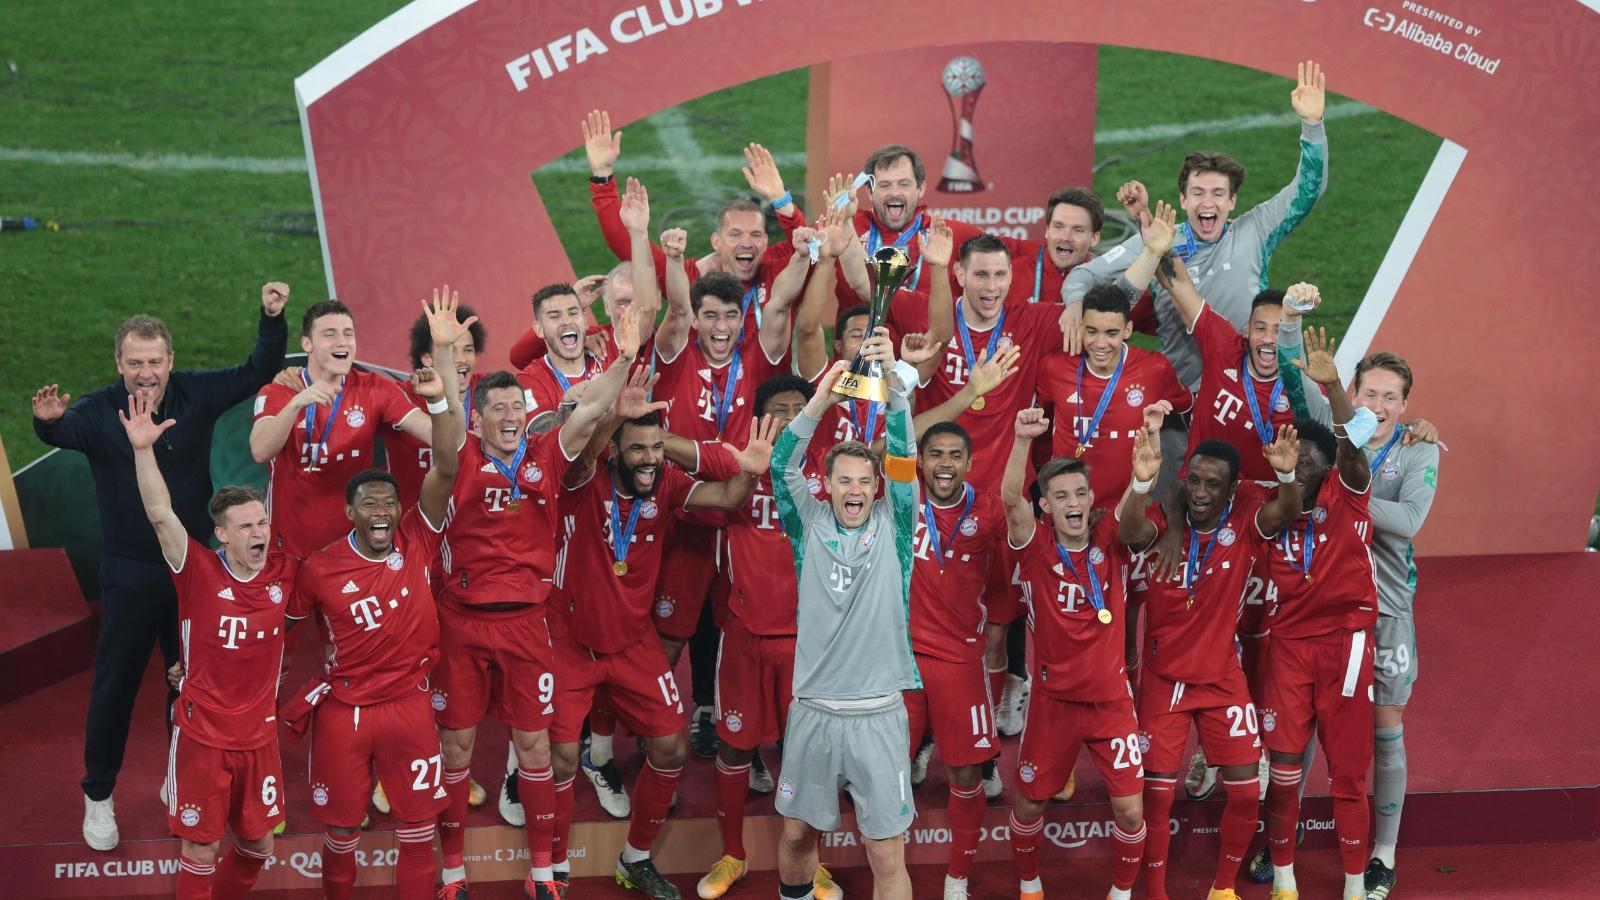 Countdown to 2022 continues after Qatar successfully hosts FIFA Club World Cup